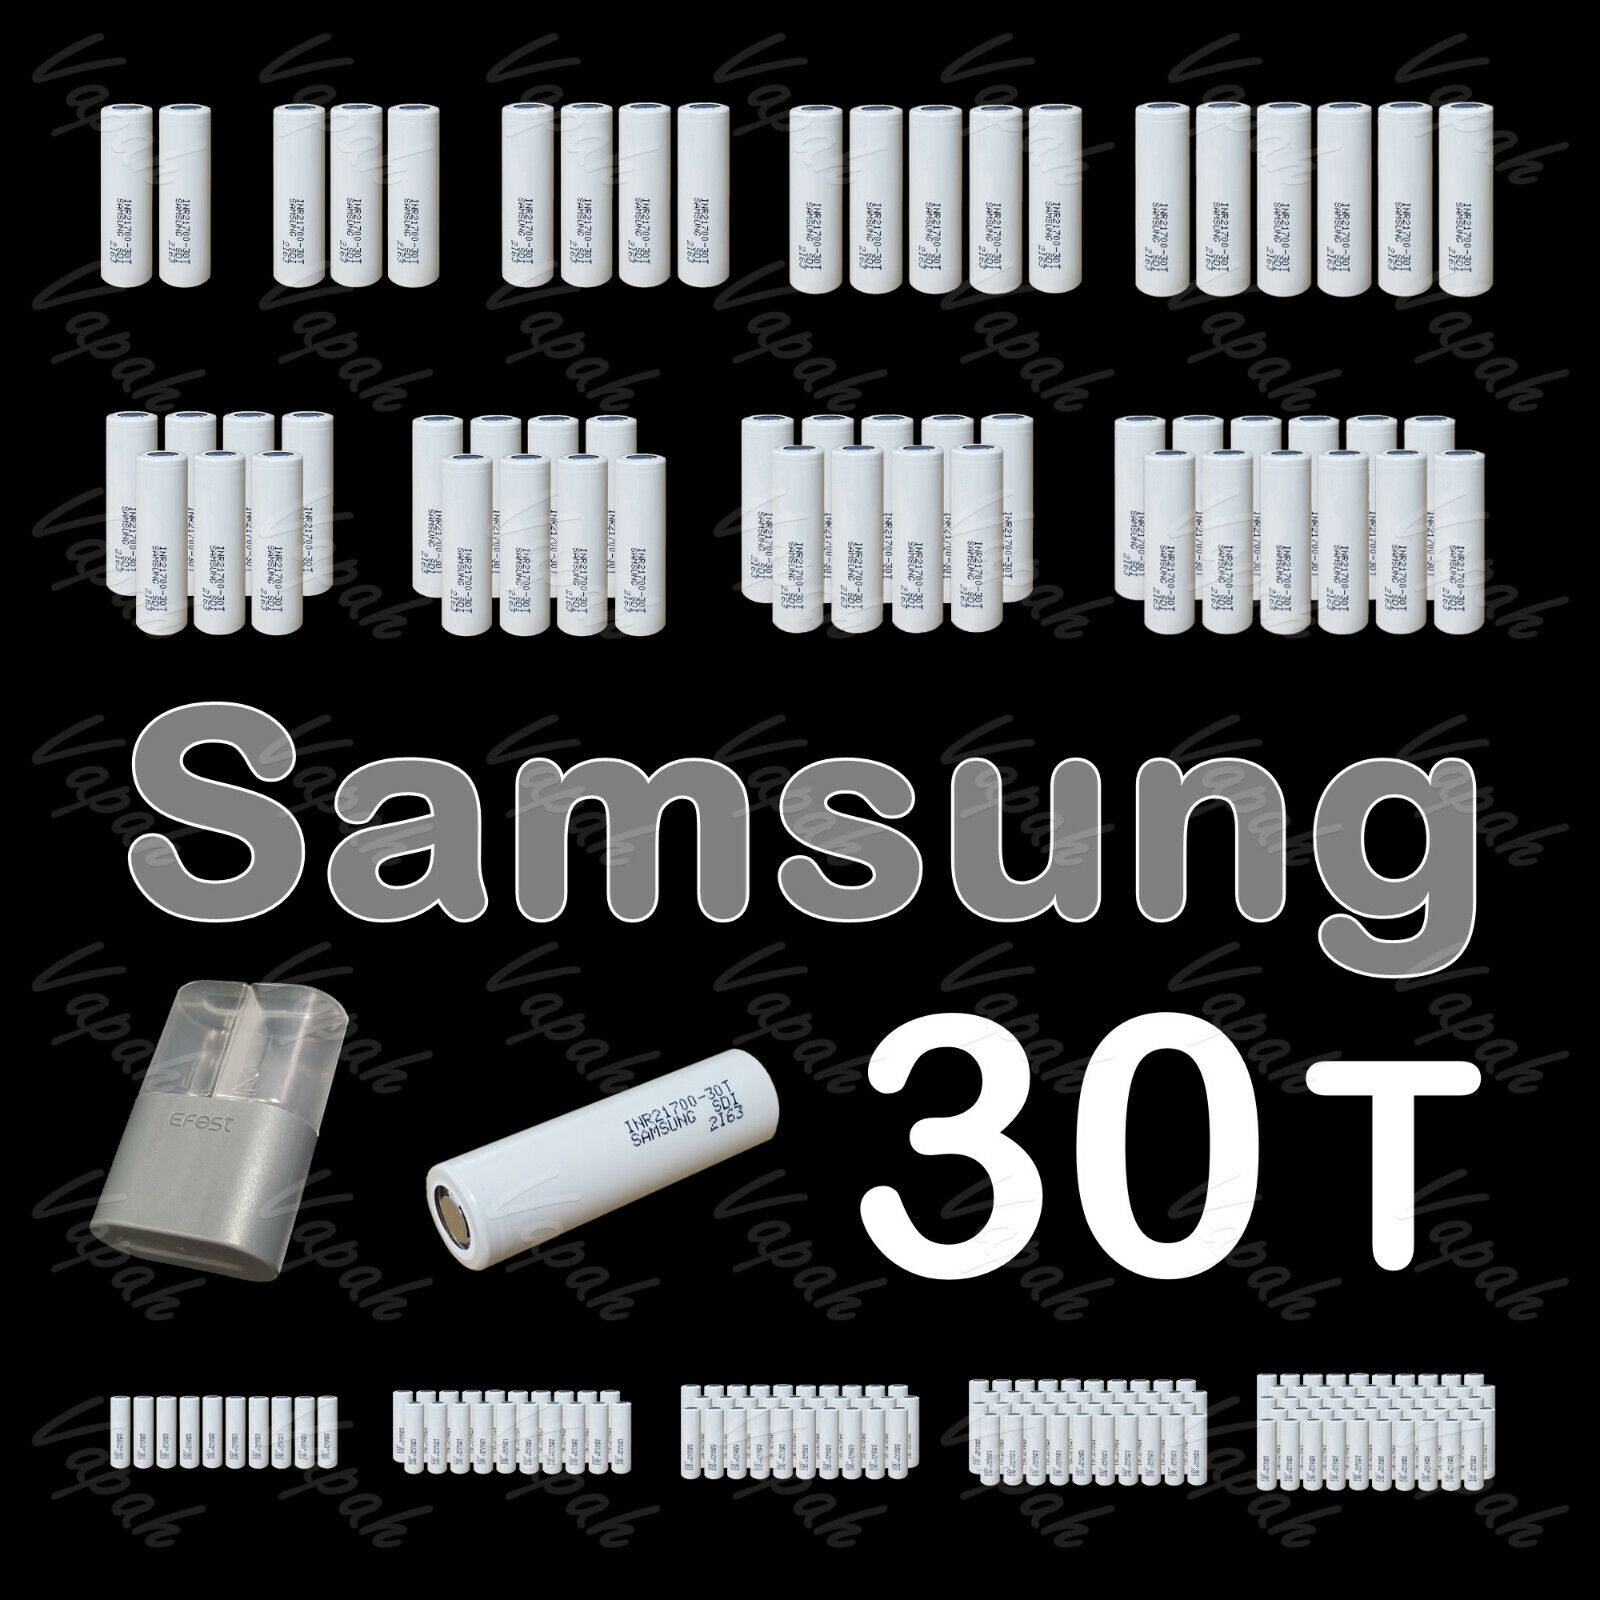 Samsung 30T 21700 Flat Top 3000mAh/35A Rechargeable Battery